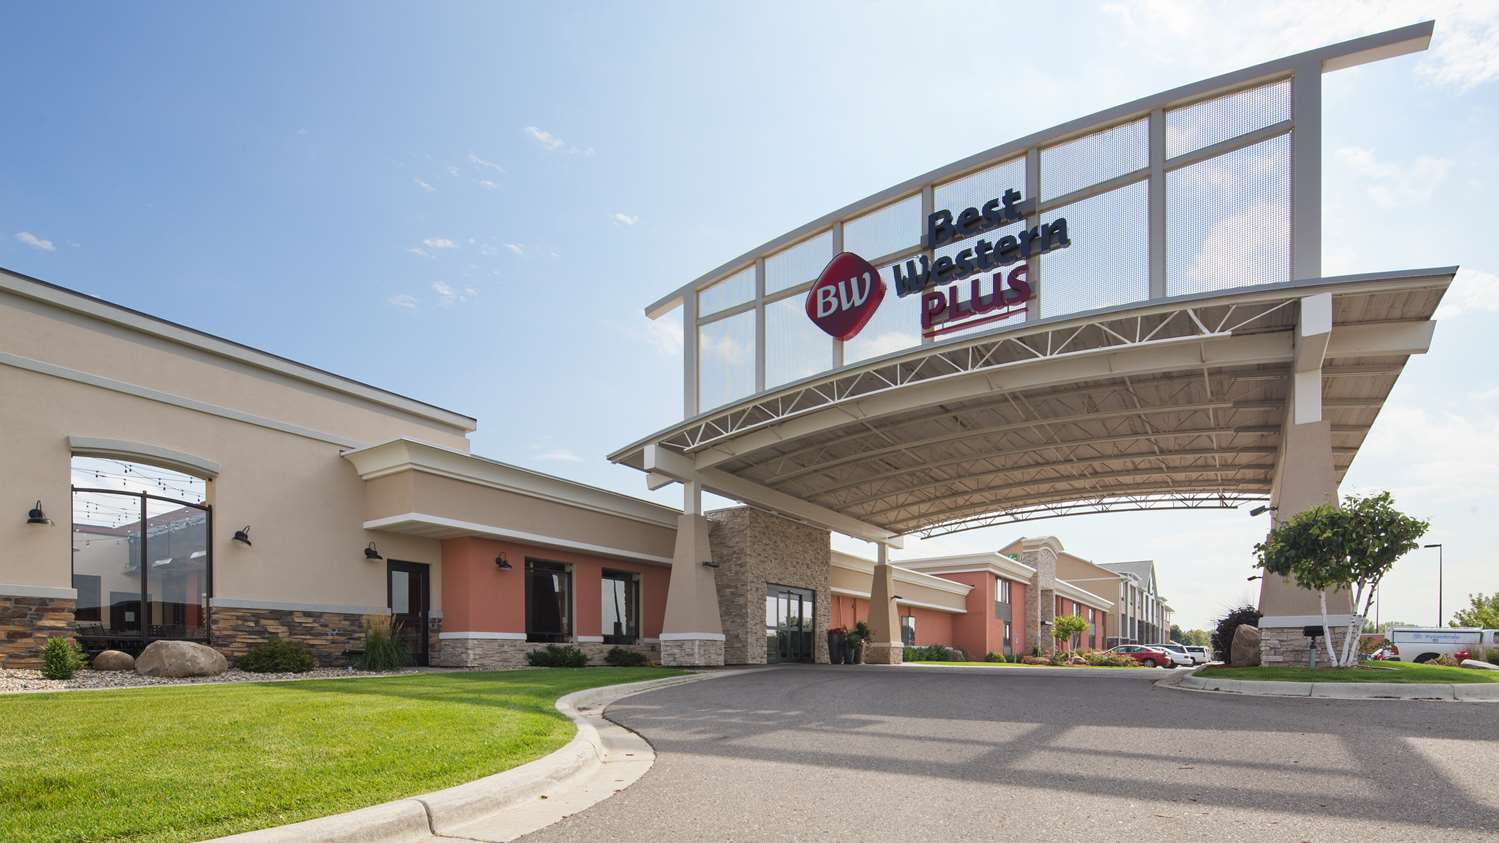 Hotel in Morton MN - Rooms at Jackpot Junction s Lower Sioux Lodge